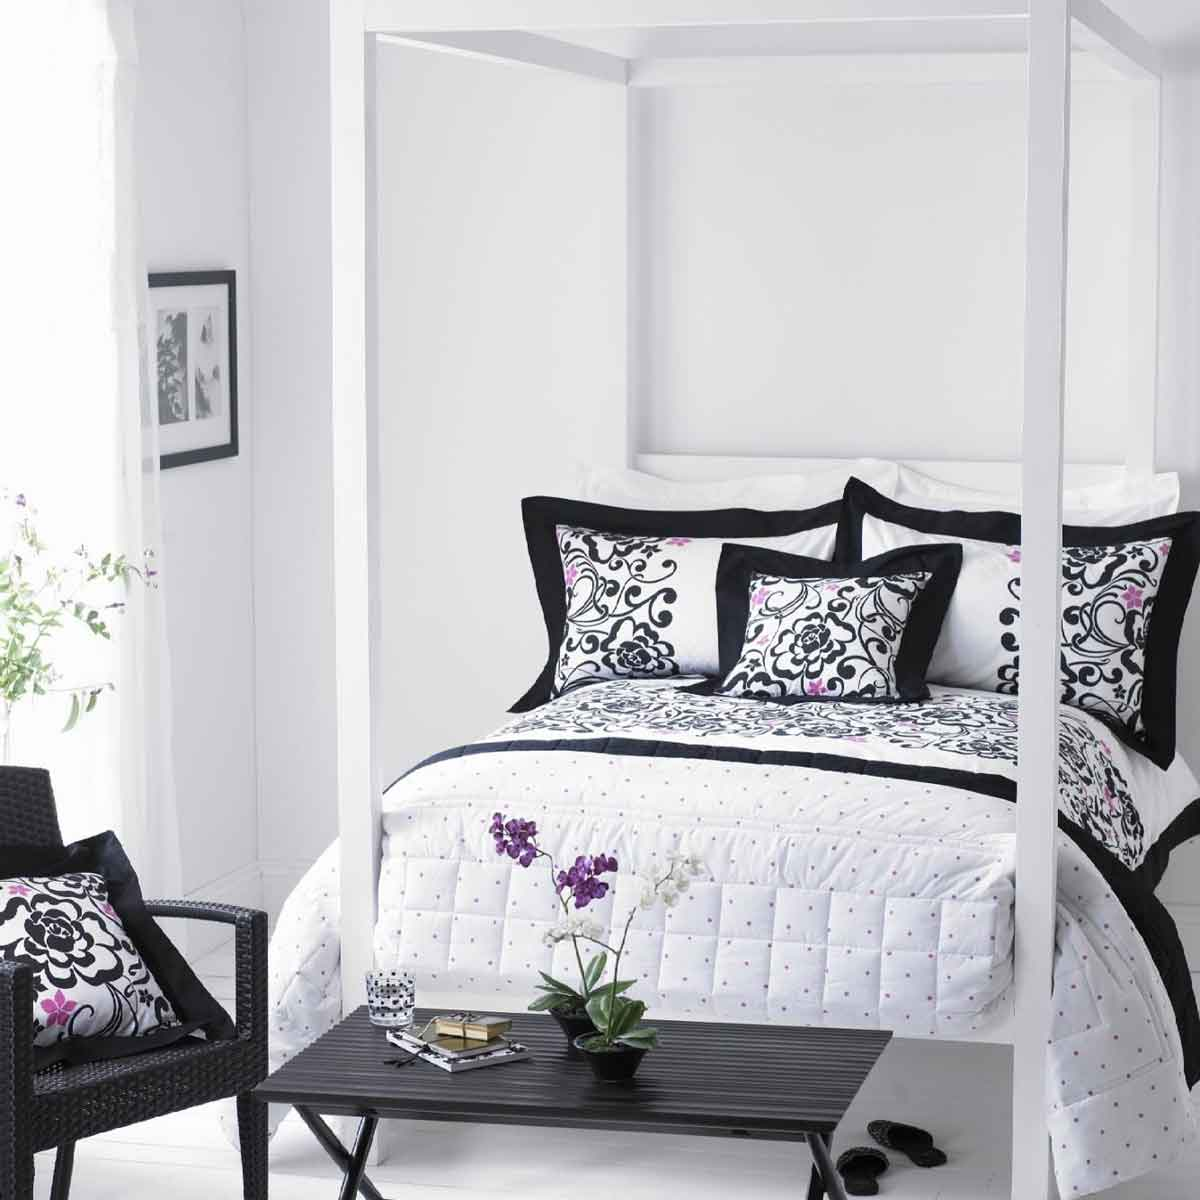 Modern black and white bedroom ideas Bedrooms decorated in black and white